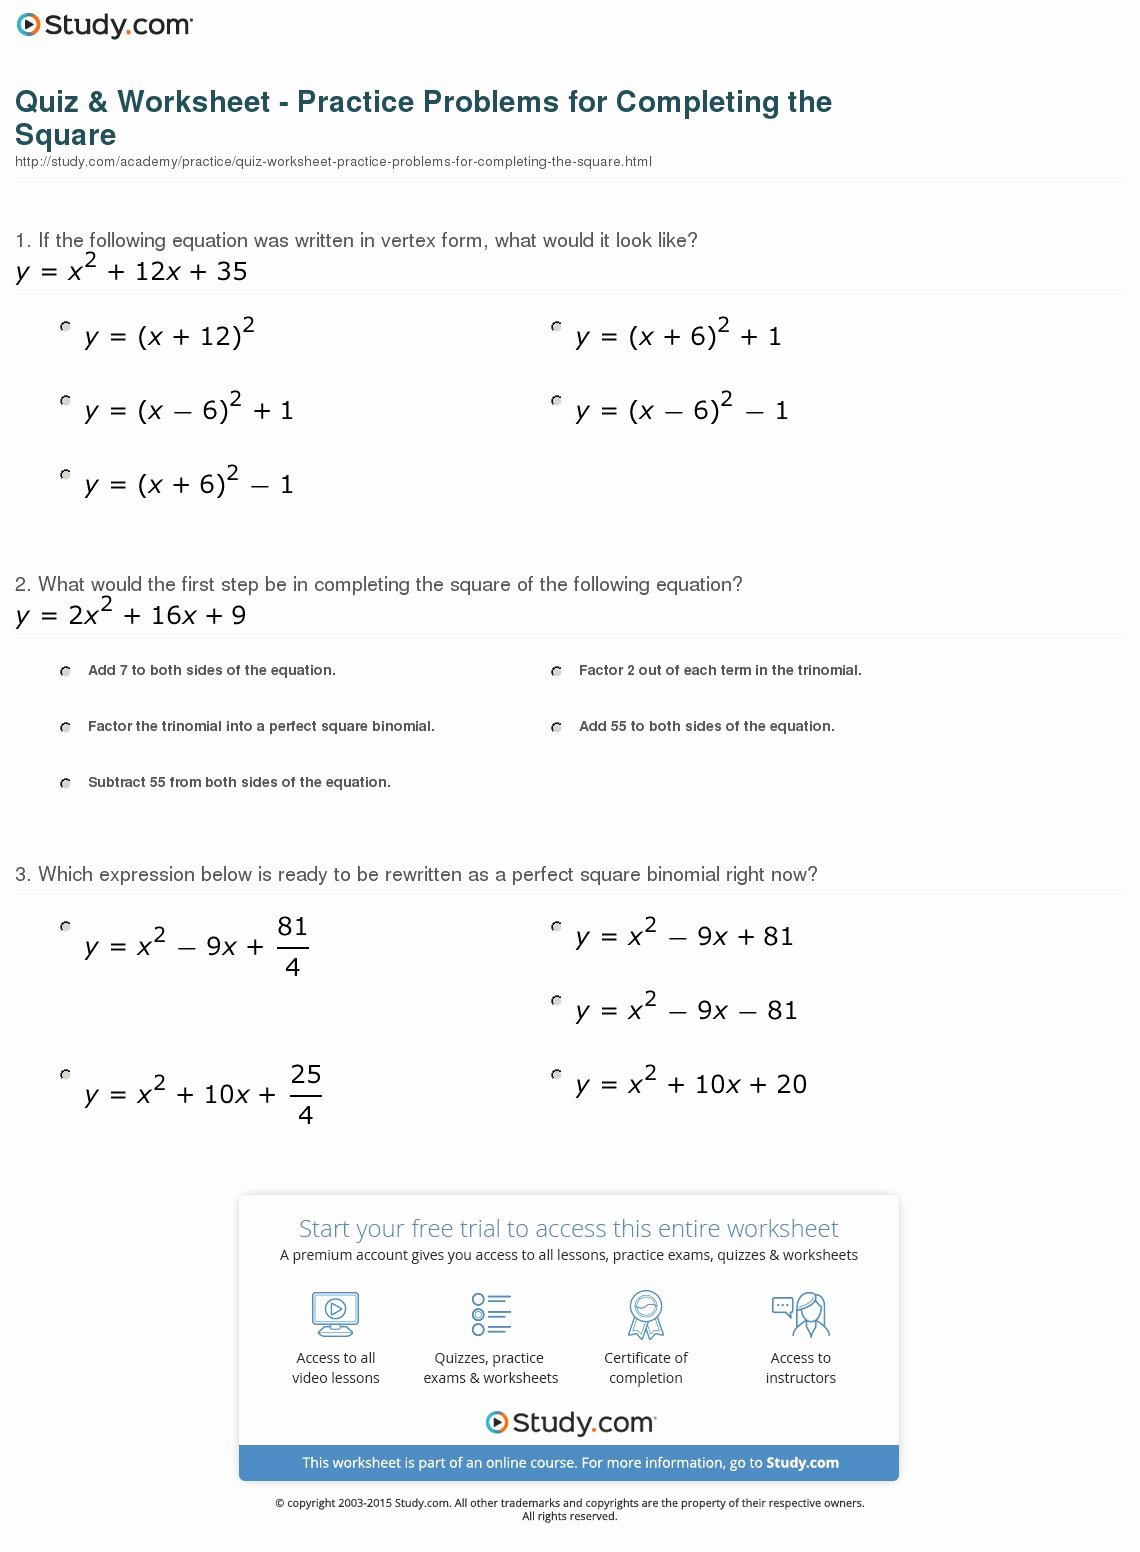 Completing the Square Practice Worksheet Fresh Quiz & Worksheet Practice Problems for Pleting the